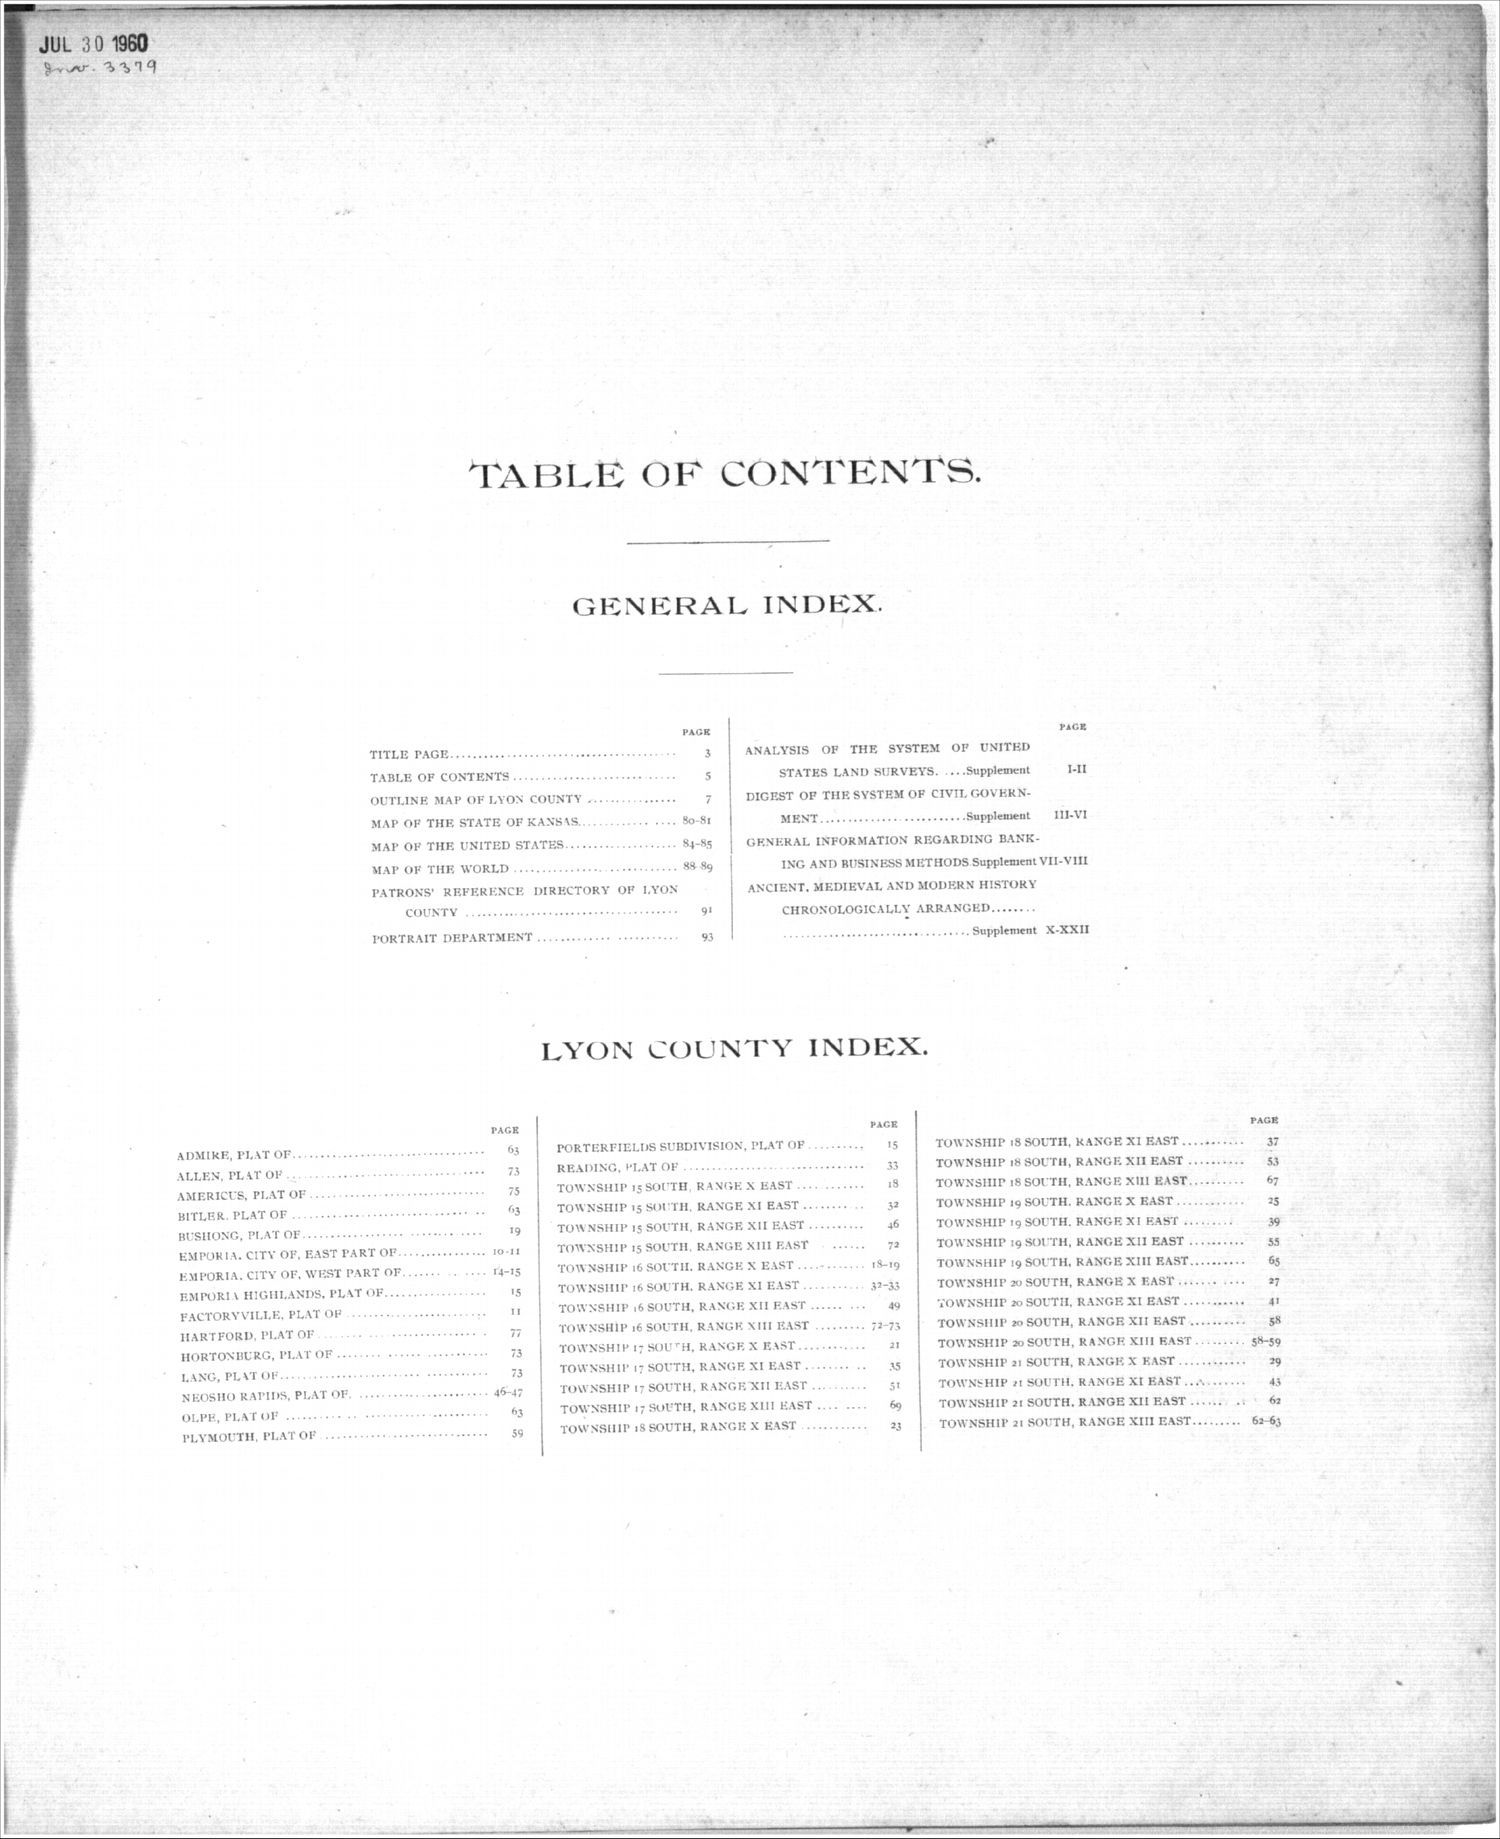 Standard atlas, Lyon County, Kansas - Table of Contents